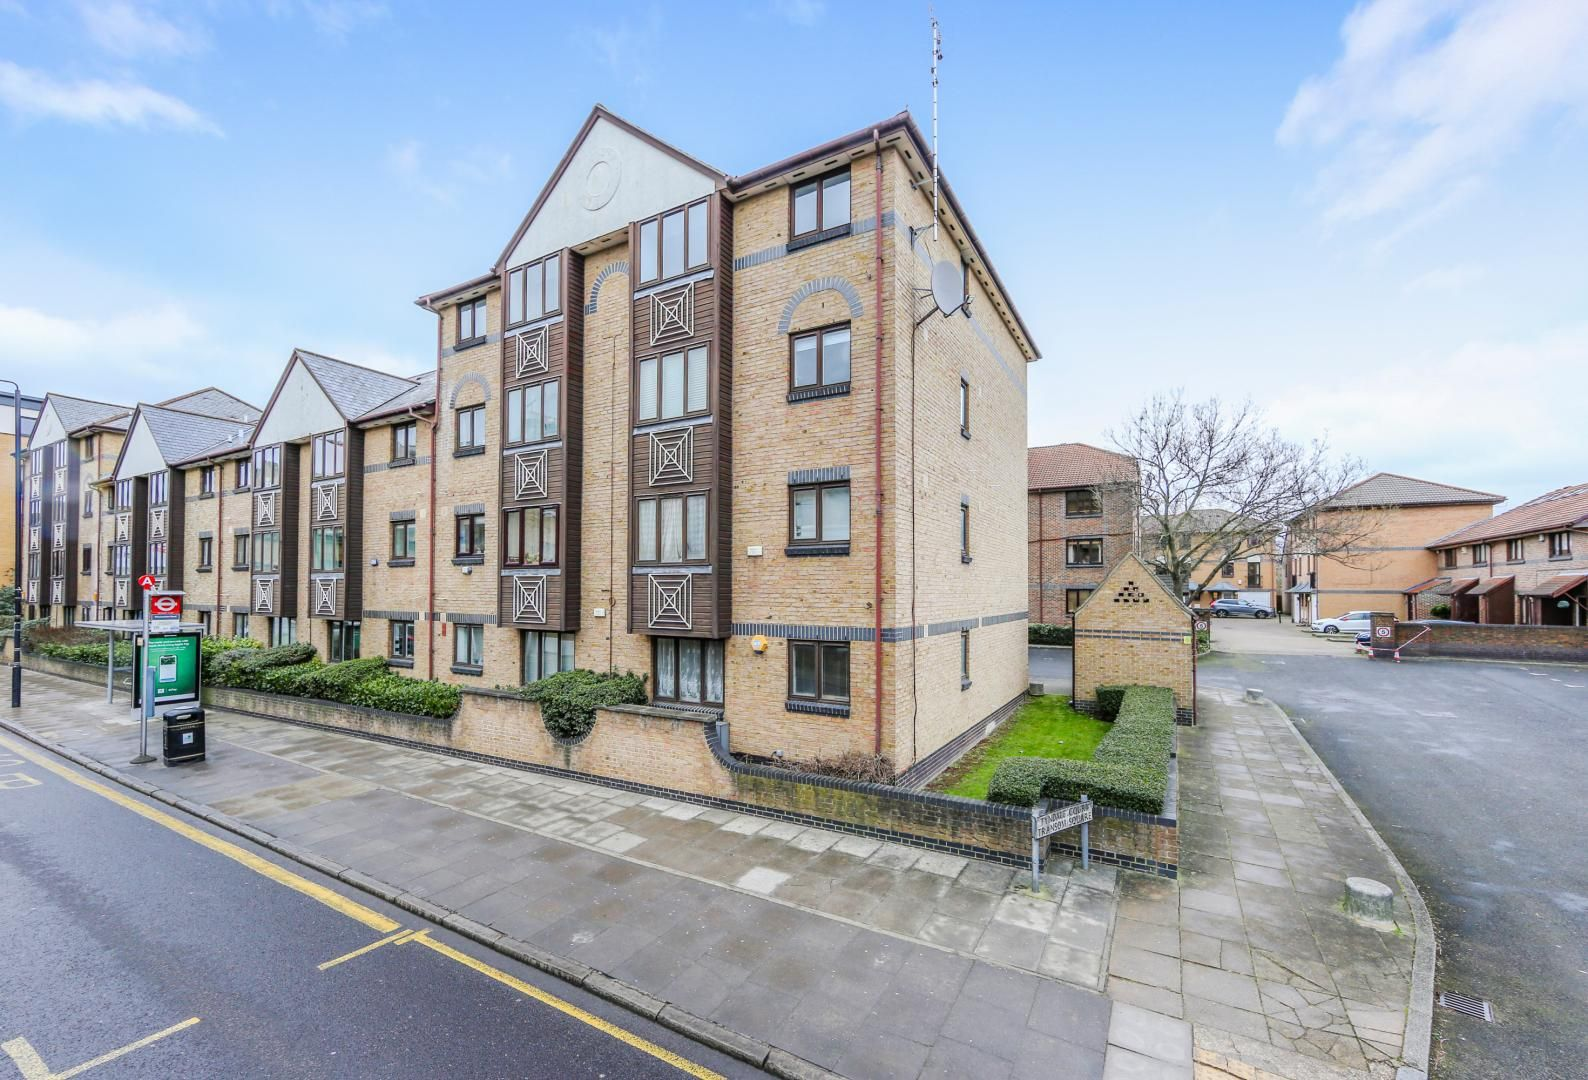 2 bed flat for sale in Tyndale Court - Property Image 1